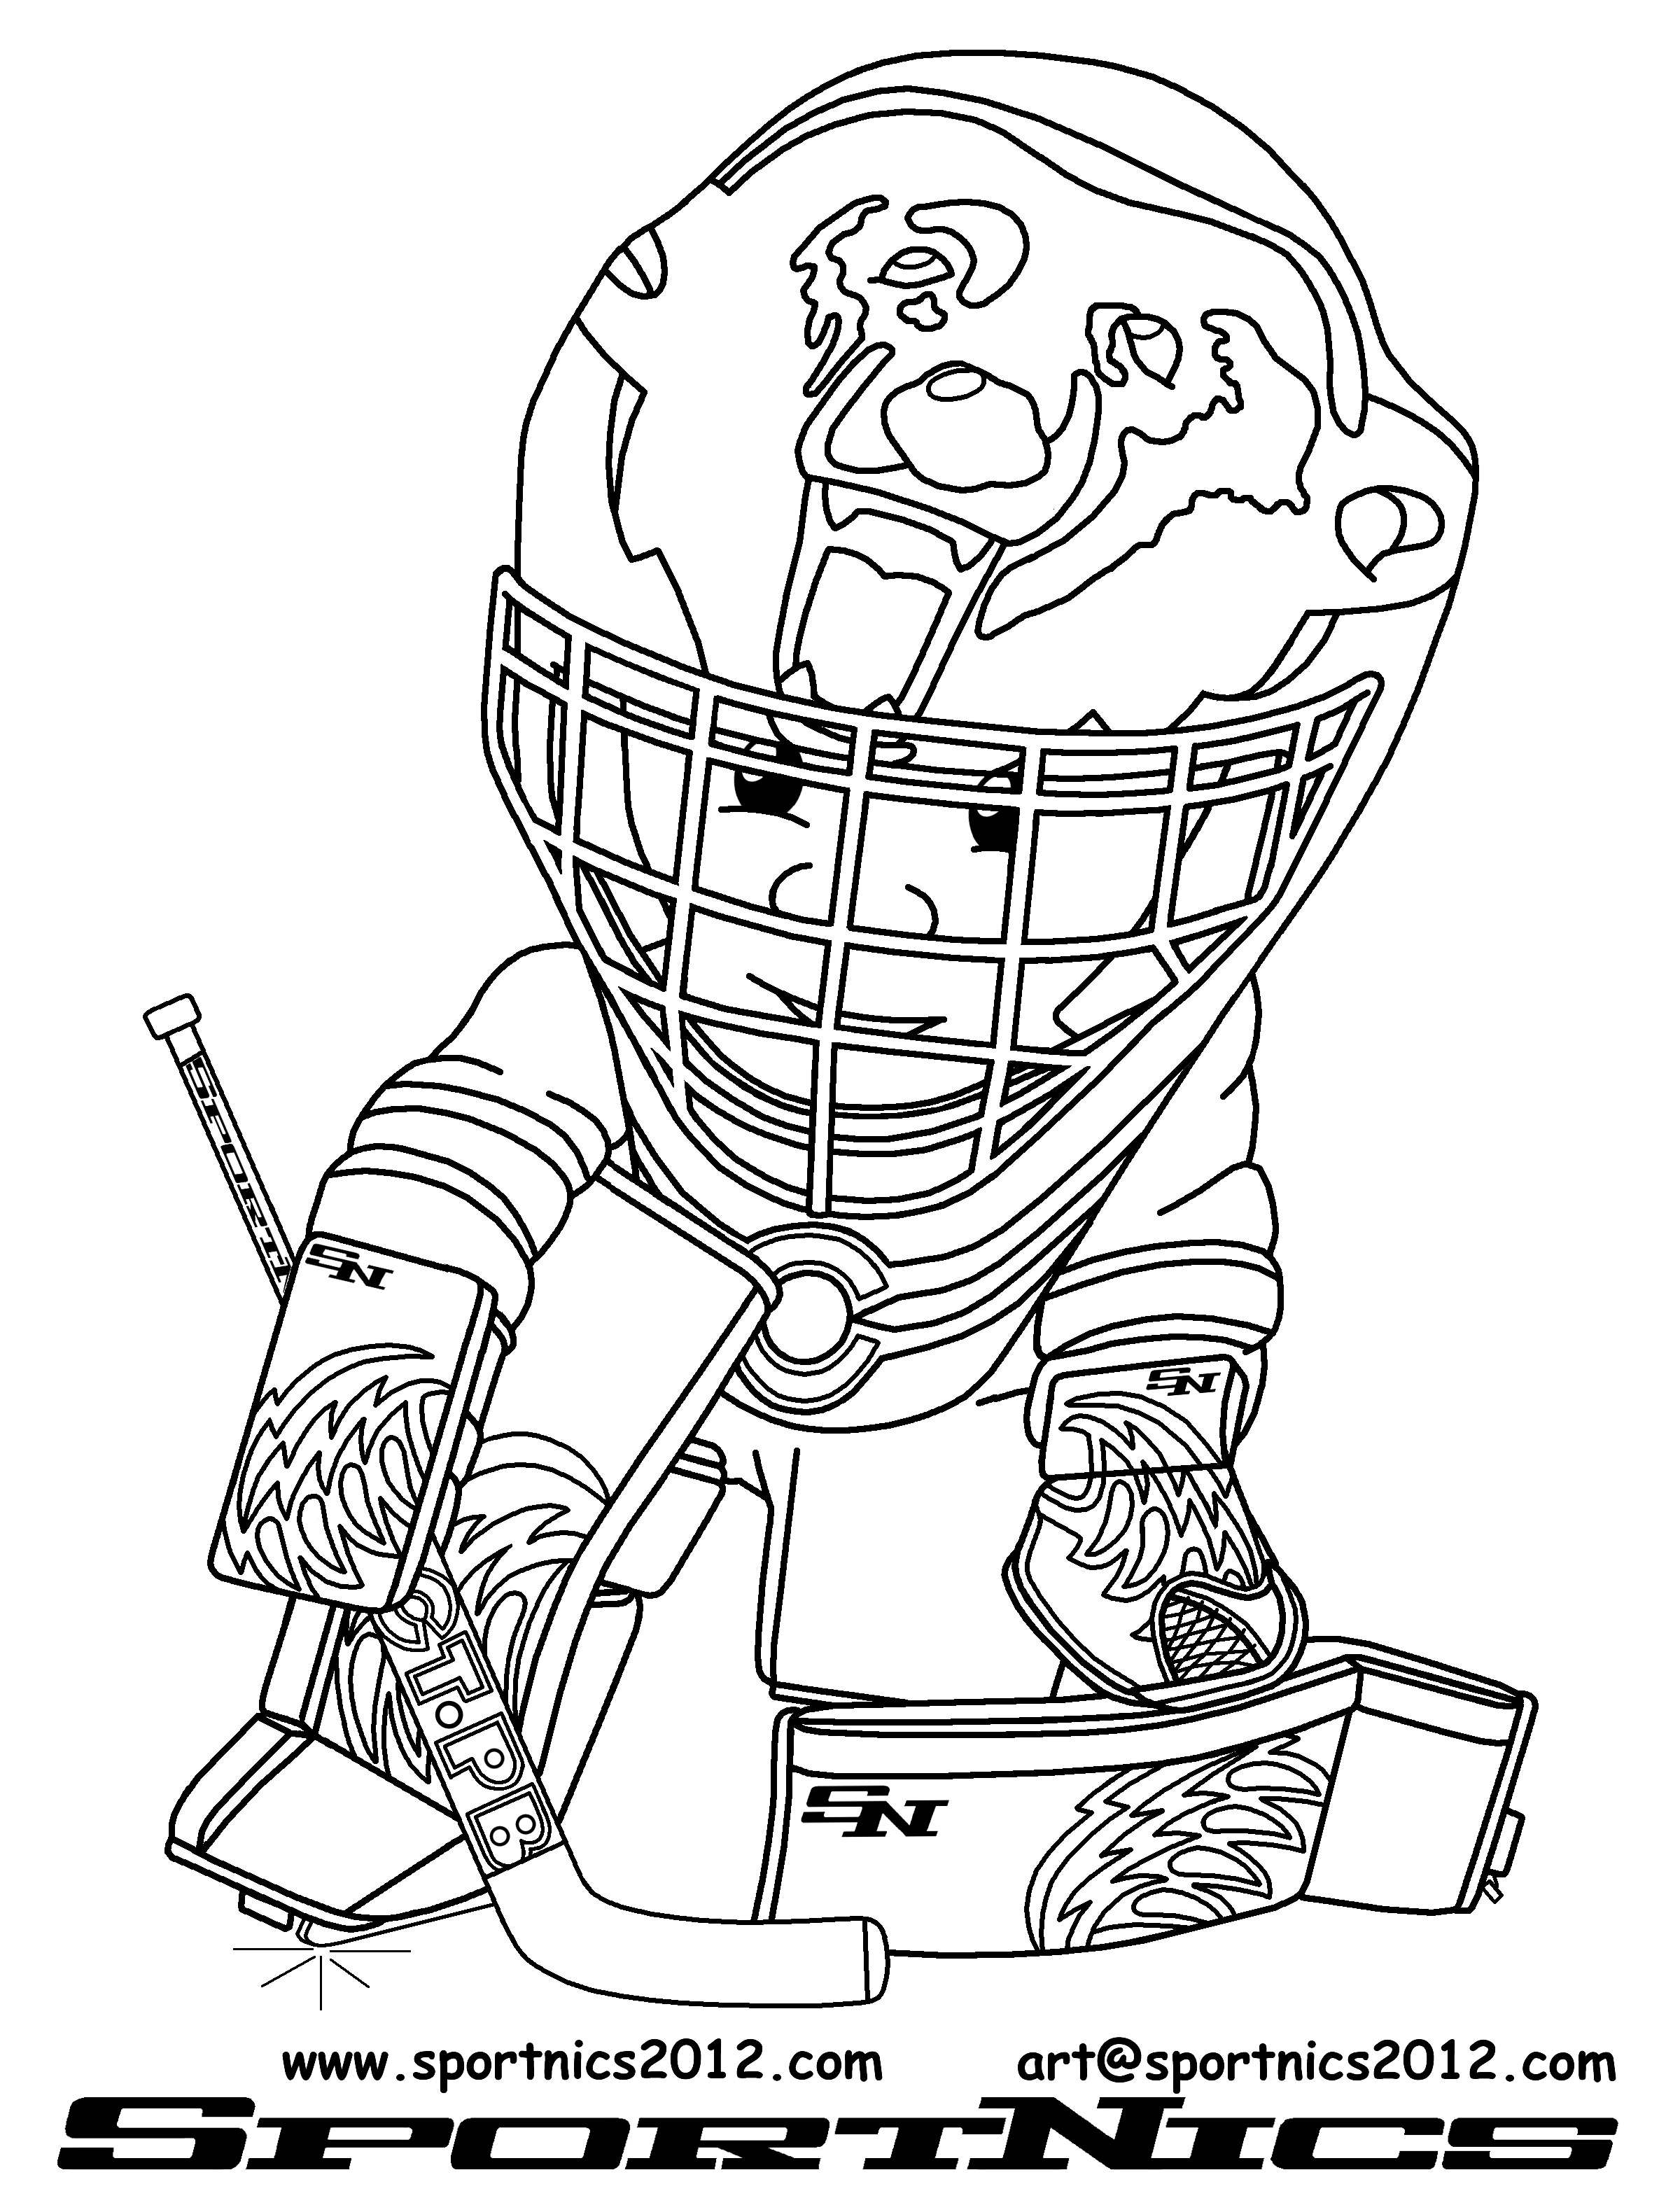 Nhl hockey coloring pages coloring pages - Dessin hockey ...